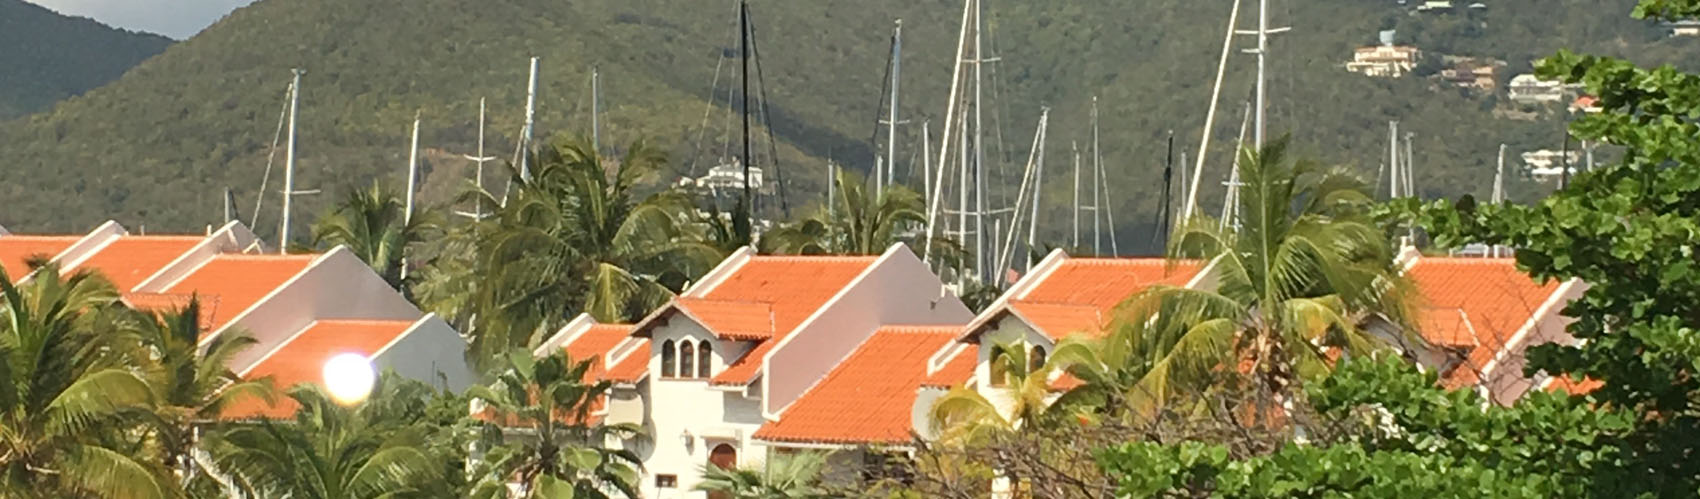 The Port near St Maarten Luxury Hotels